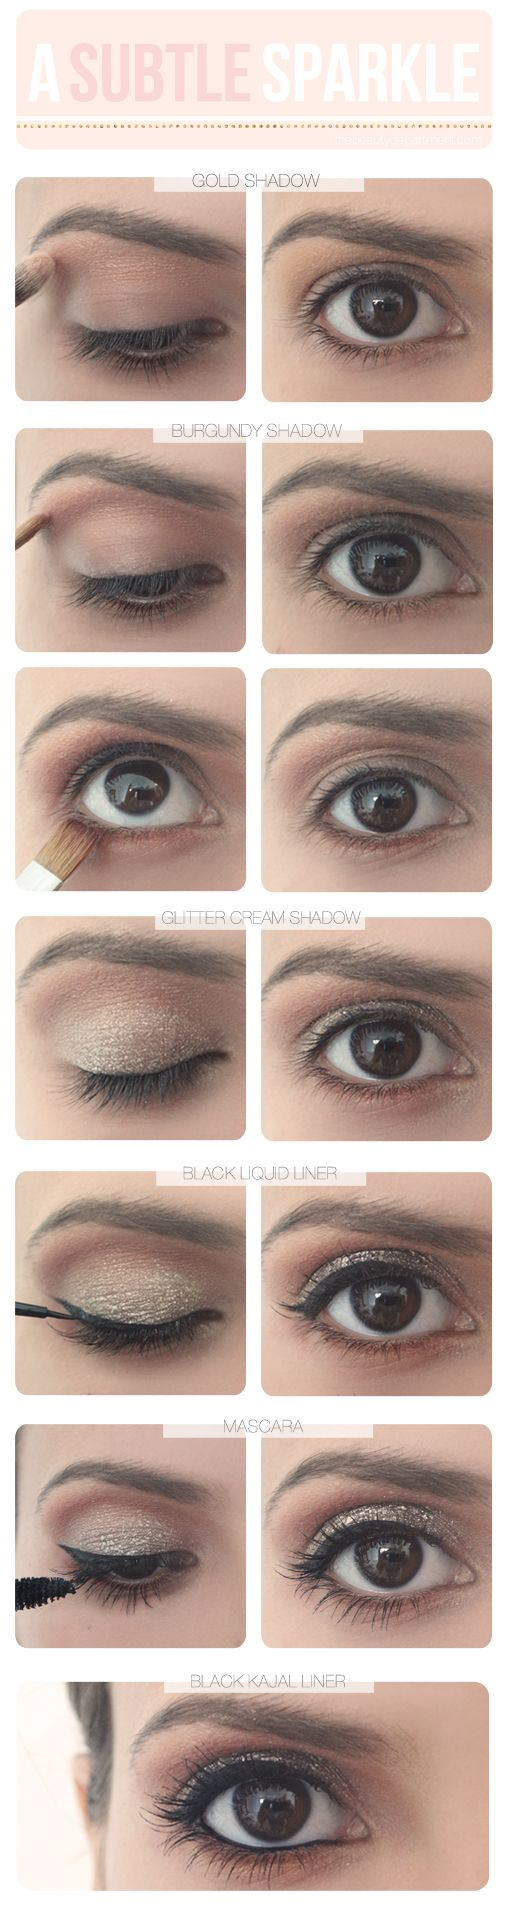 This is a great guide to pageant eye makeup. The neutral palette is very important. While shimmery or bright colors are great for high fashion, it's best to keep to neutral tones for the pageant stage.